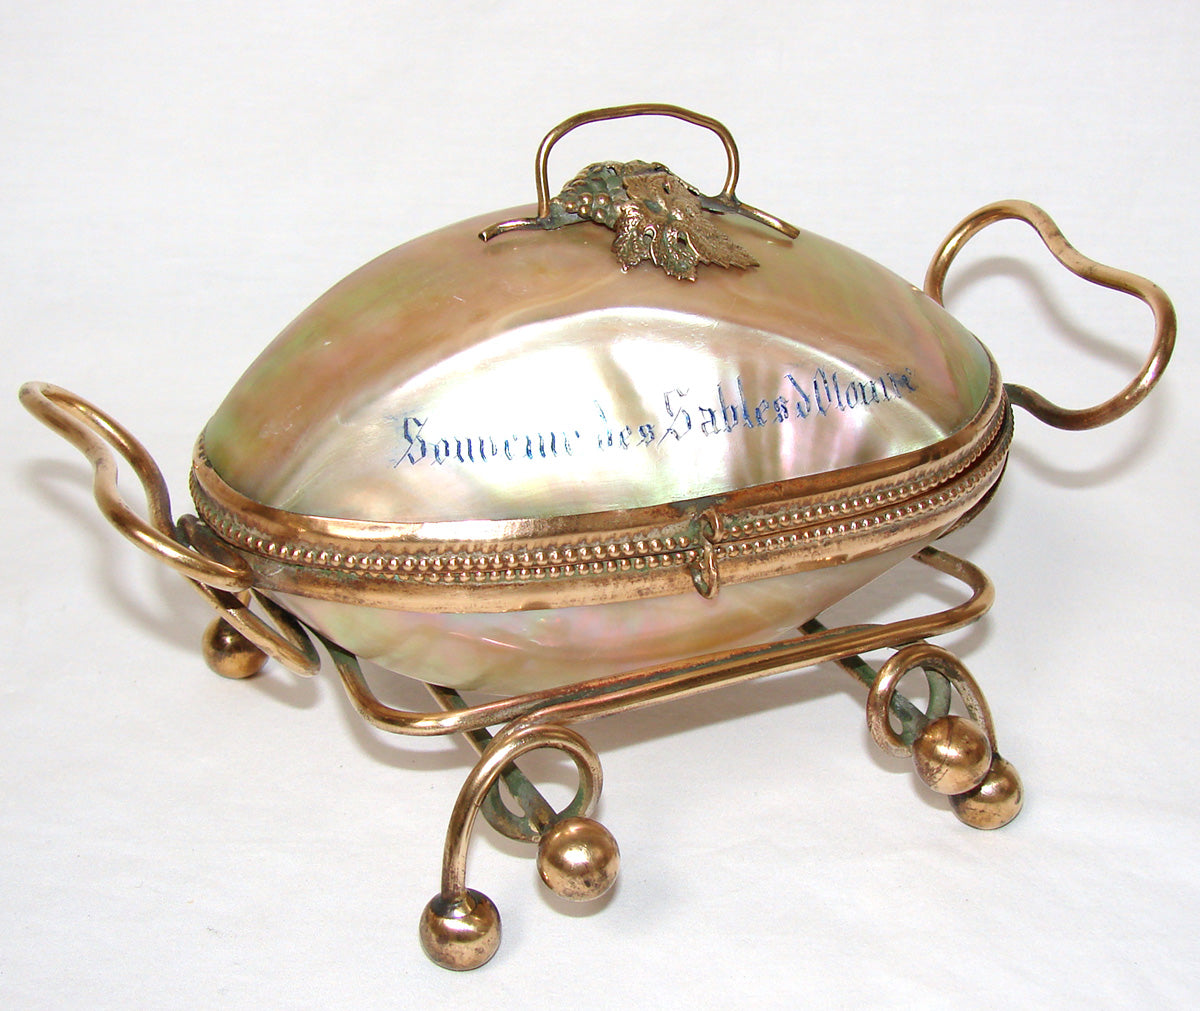 Large Antique French Napoleon III Era Palais Royal Style Mother of Pearl 'Egg' Casket, Souvenir